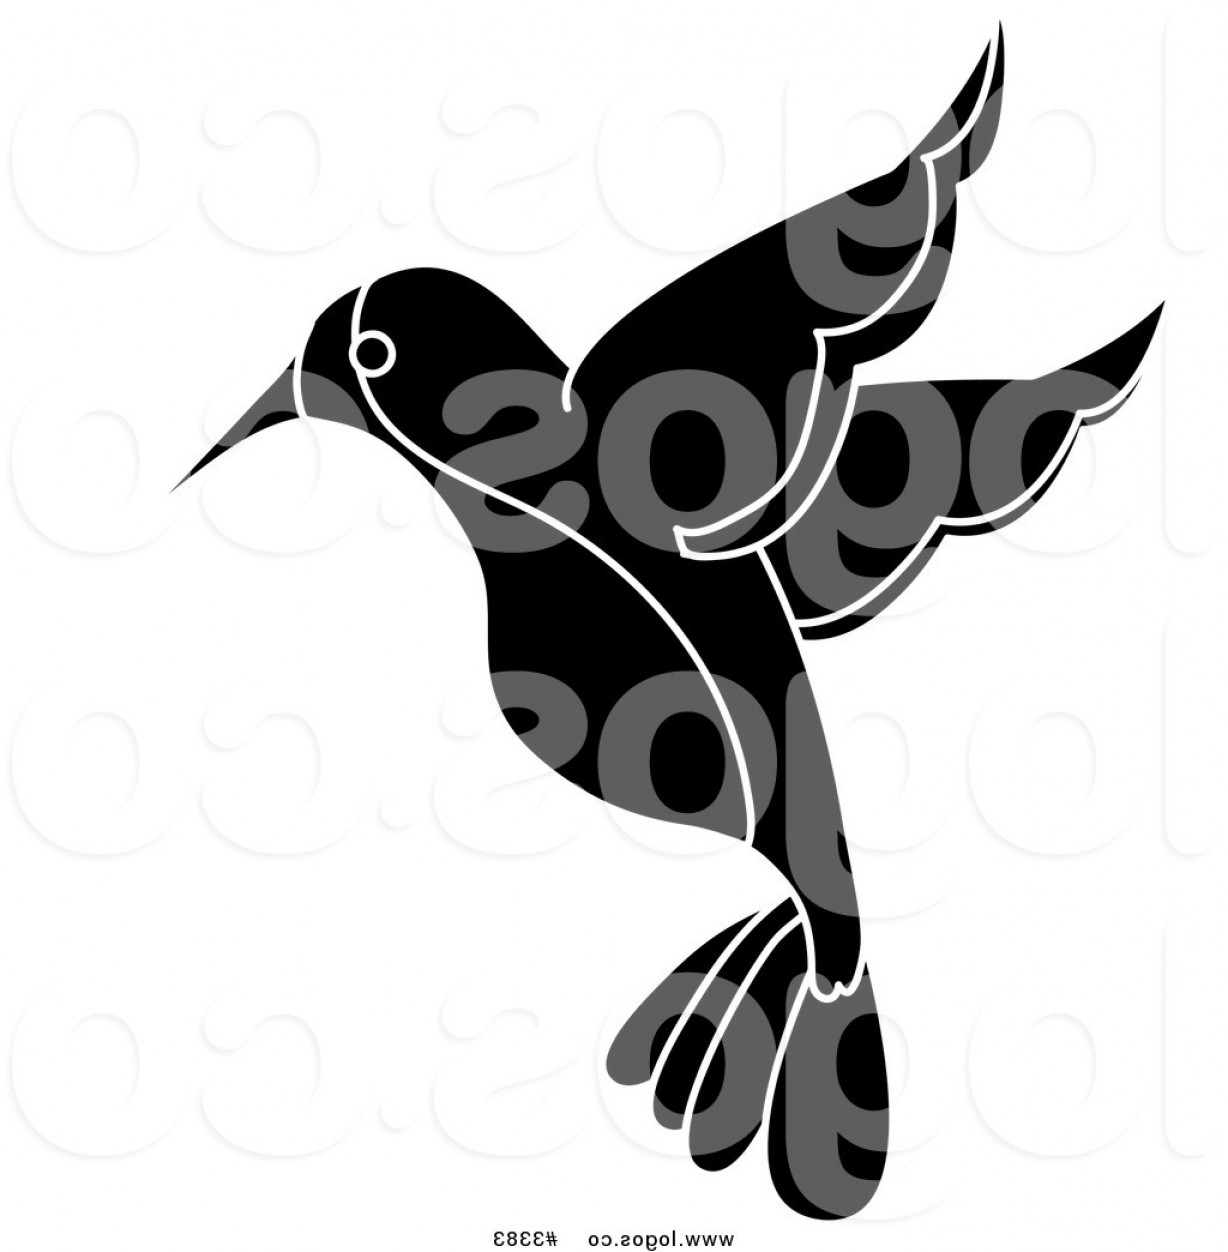 Black And White Bird Free Vector Graphics: Royalty Free Vector Of A Black And White Hummingbird Logo By Pams Clipart